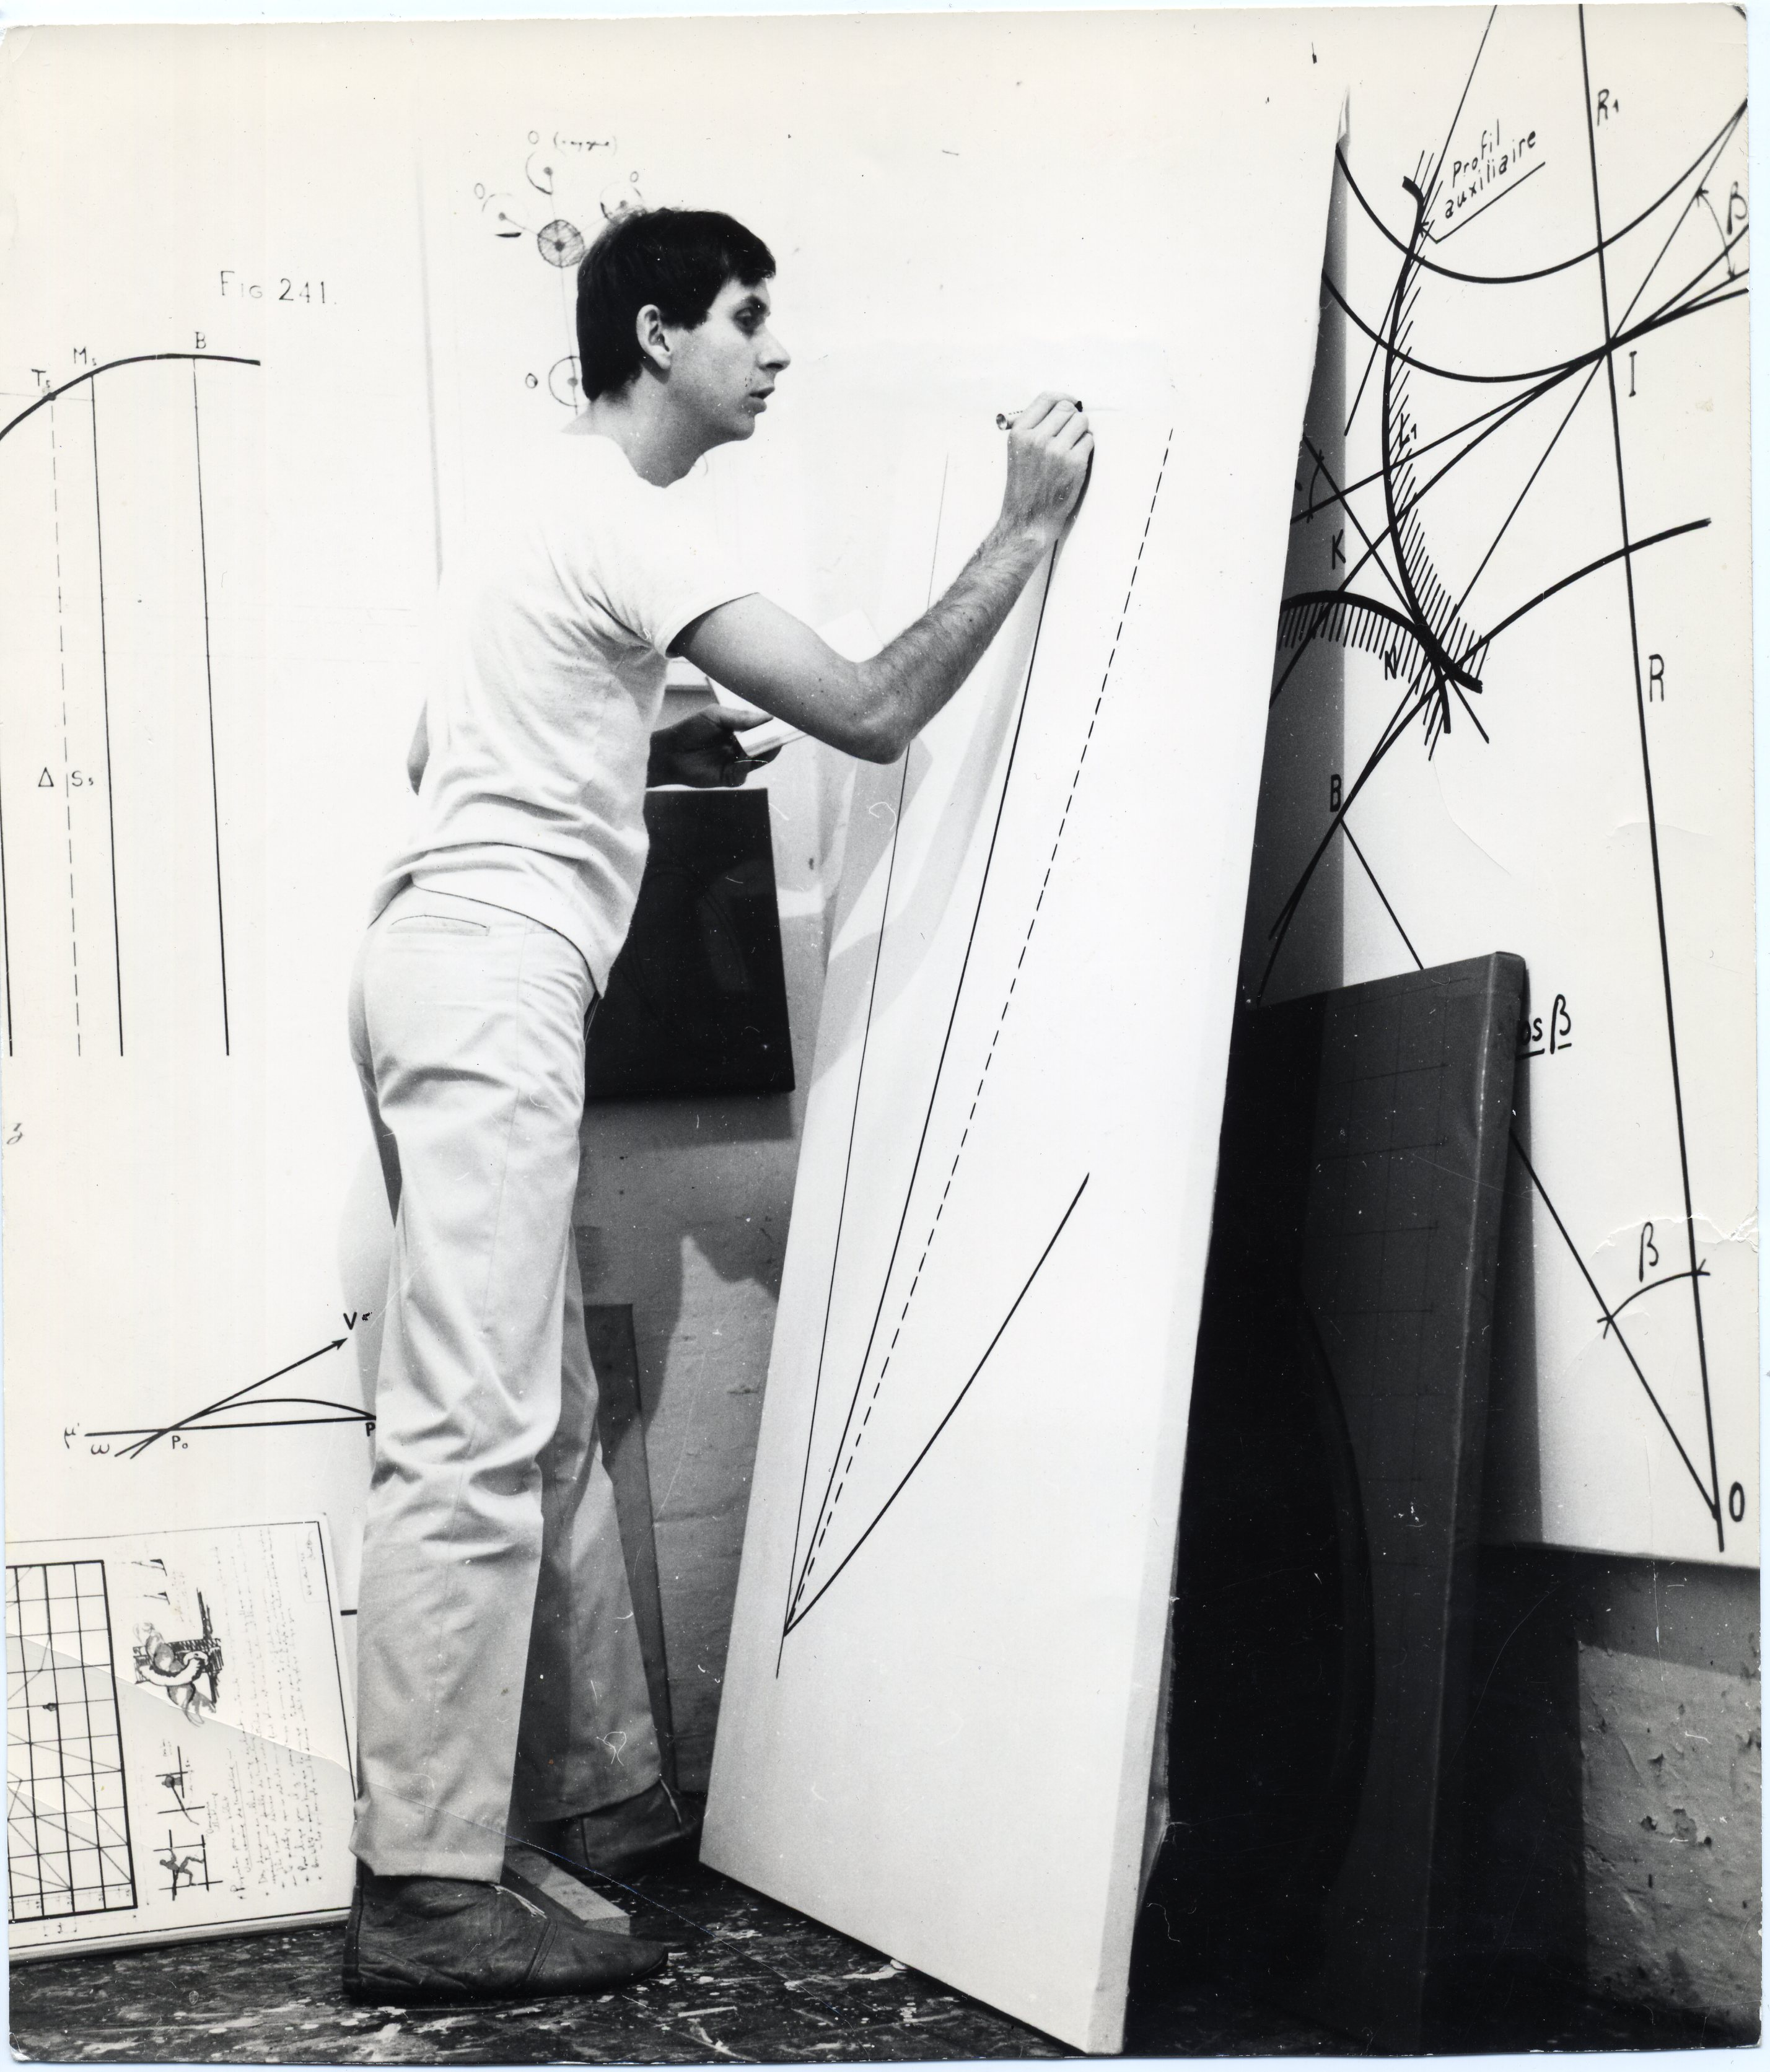 Bernar Venet dans son atelier Nice, 1966. © Courtesy Archives Bernar Venet, New York. Adagp, Paris, 2018